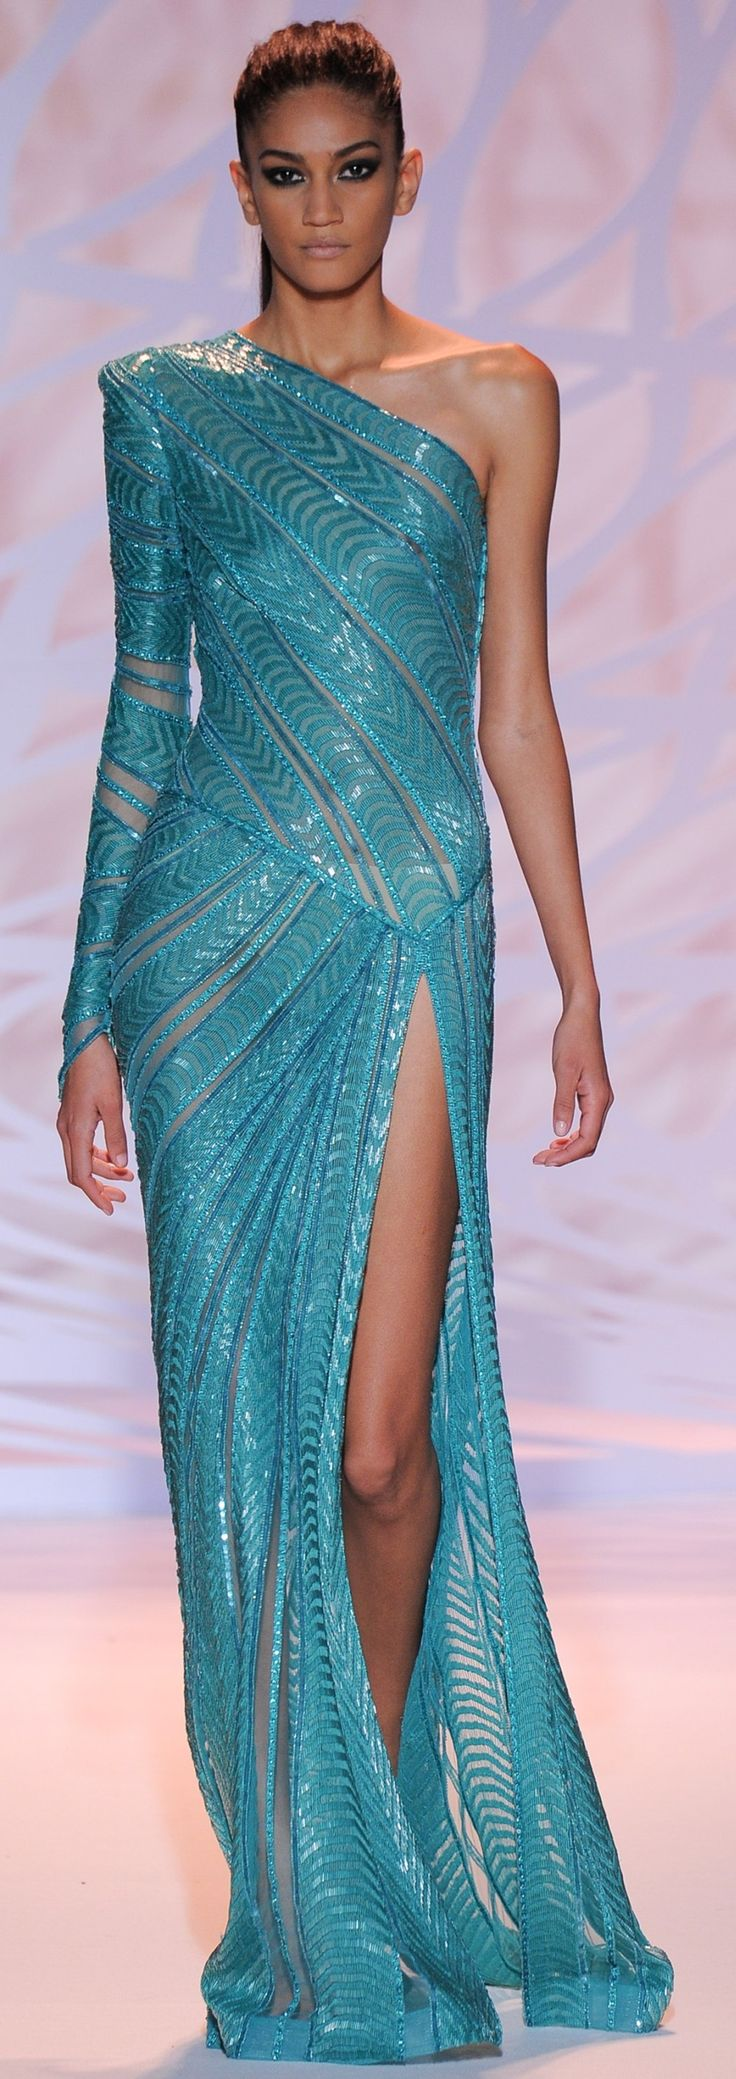 719 best Haute couture - Prêt-à-porter images on Pinterest ...